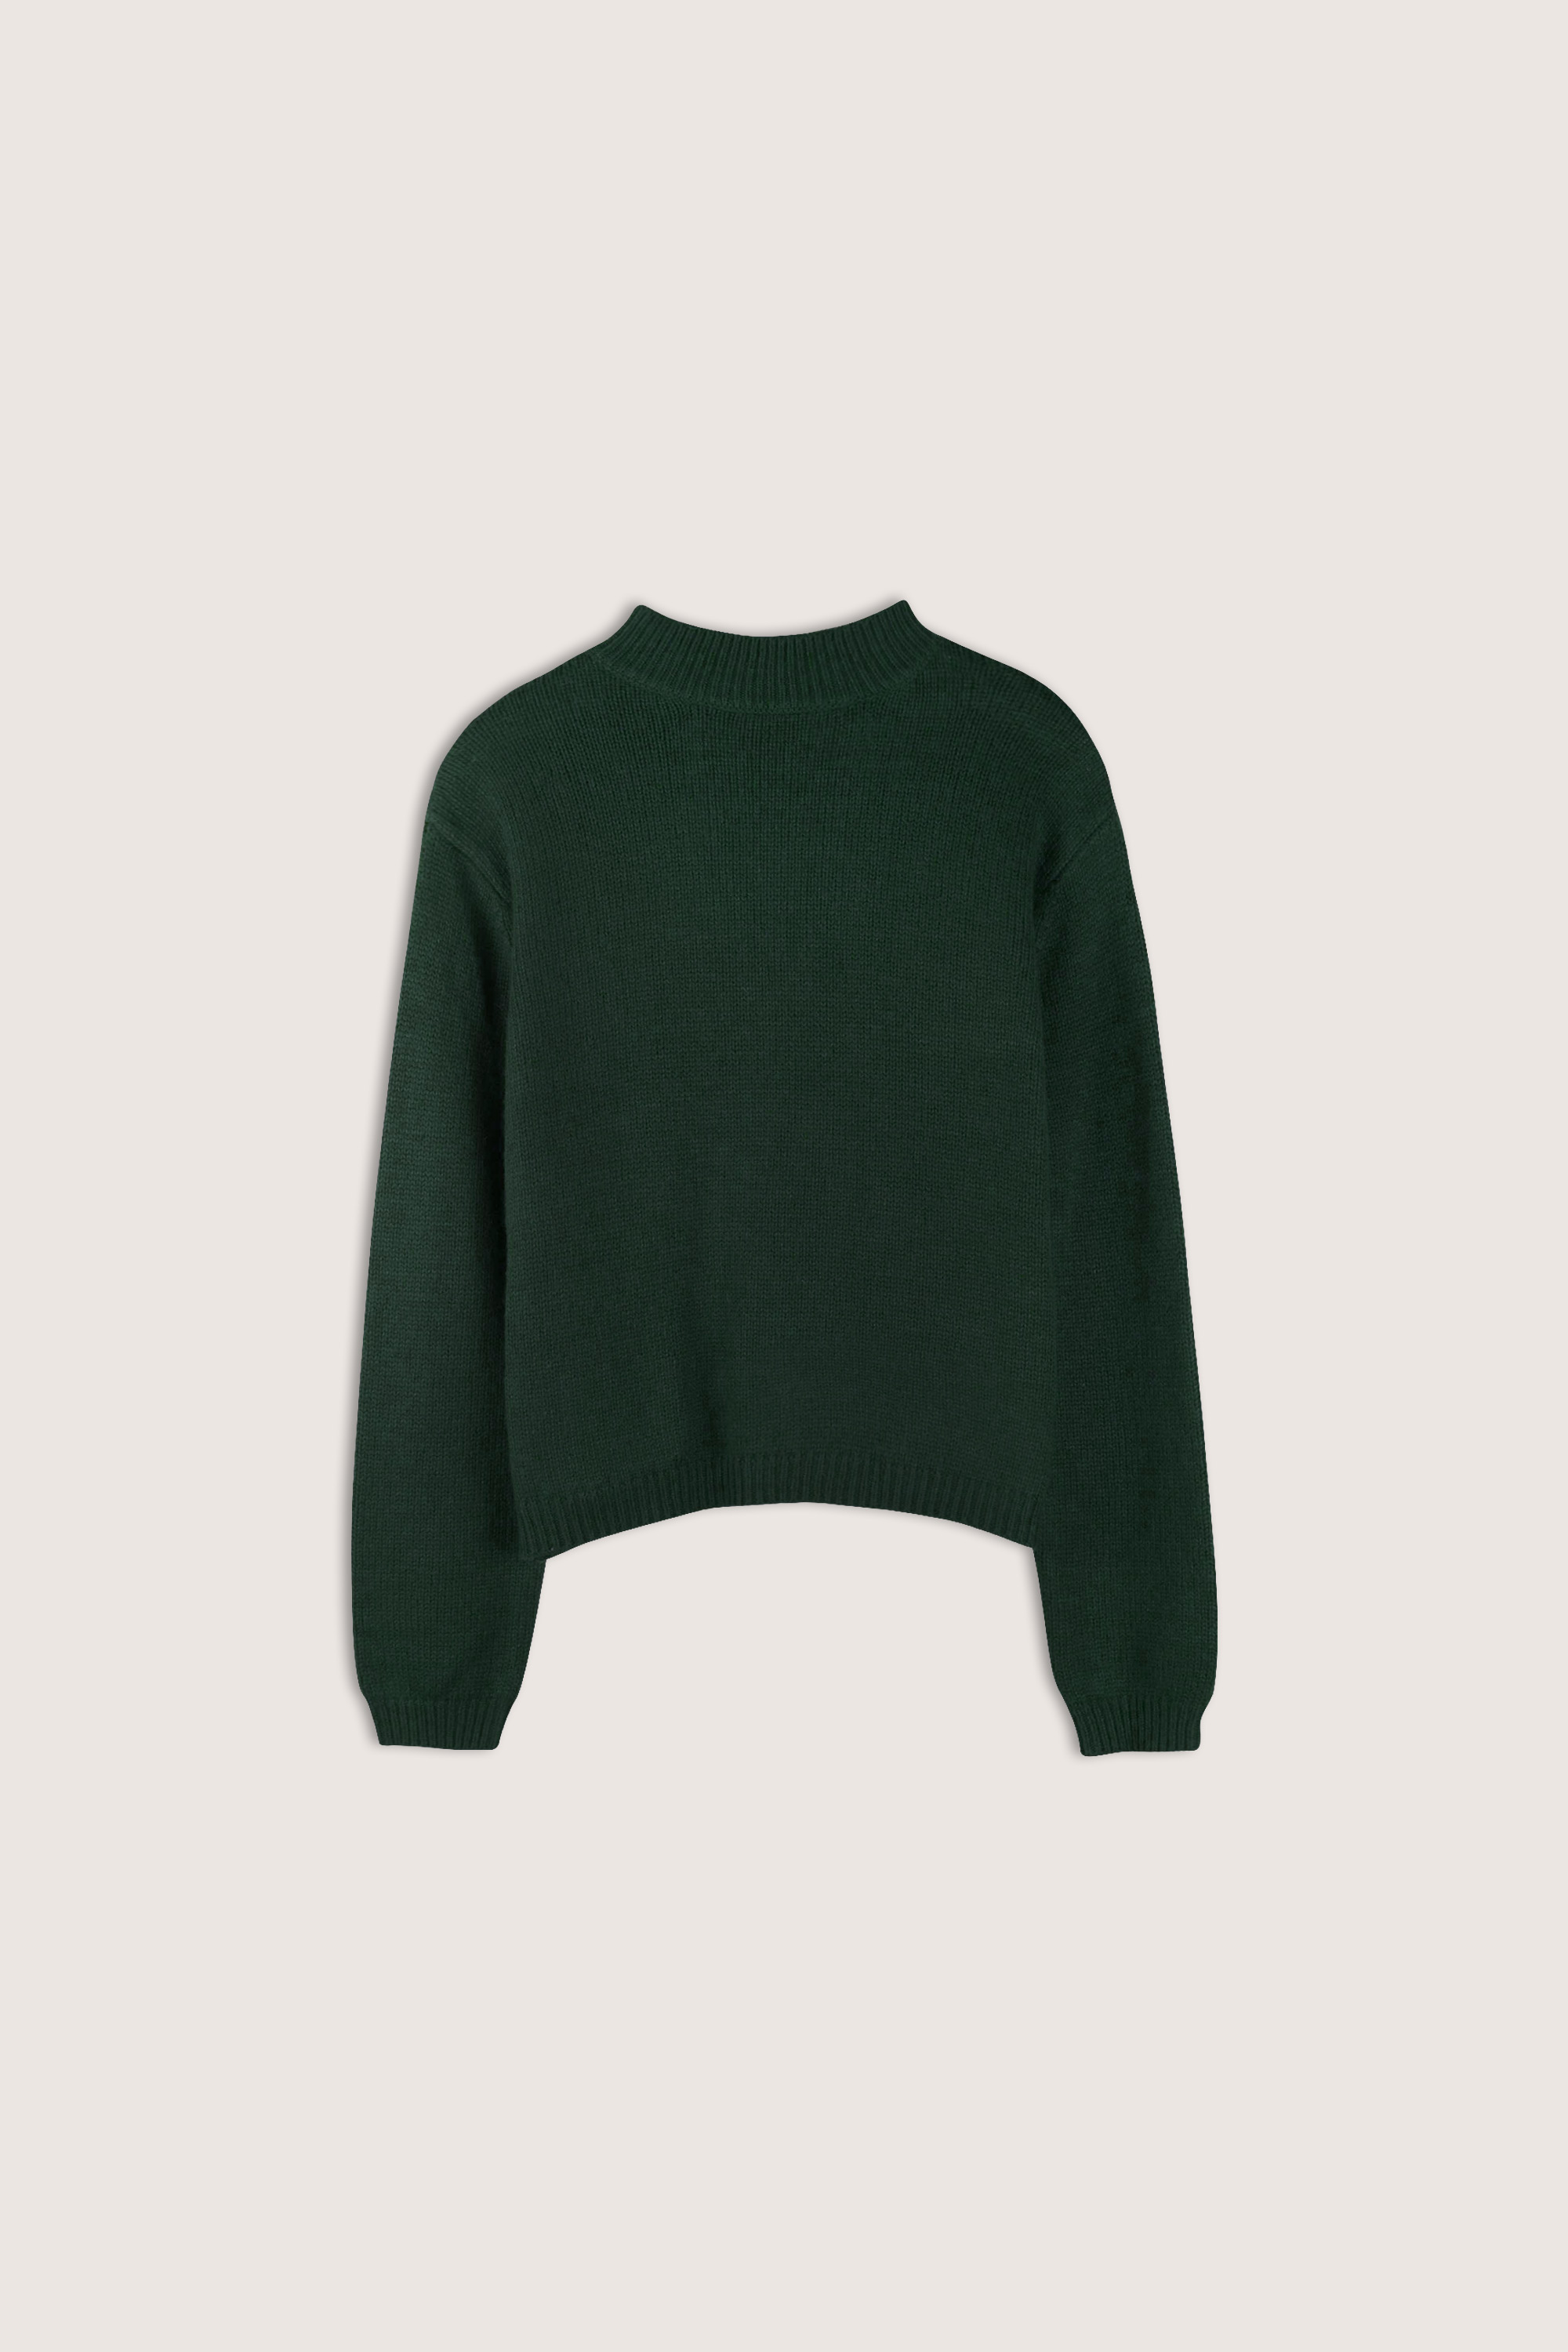 Sweater 1783 Green 7